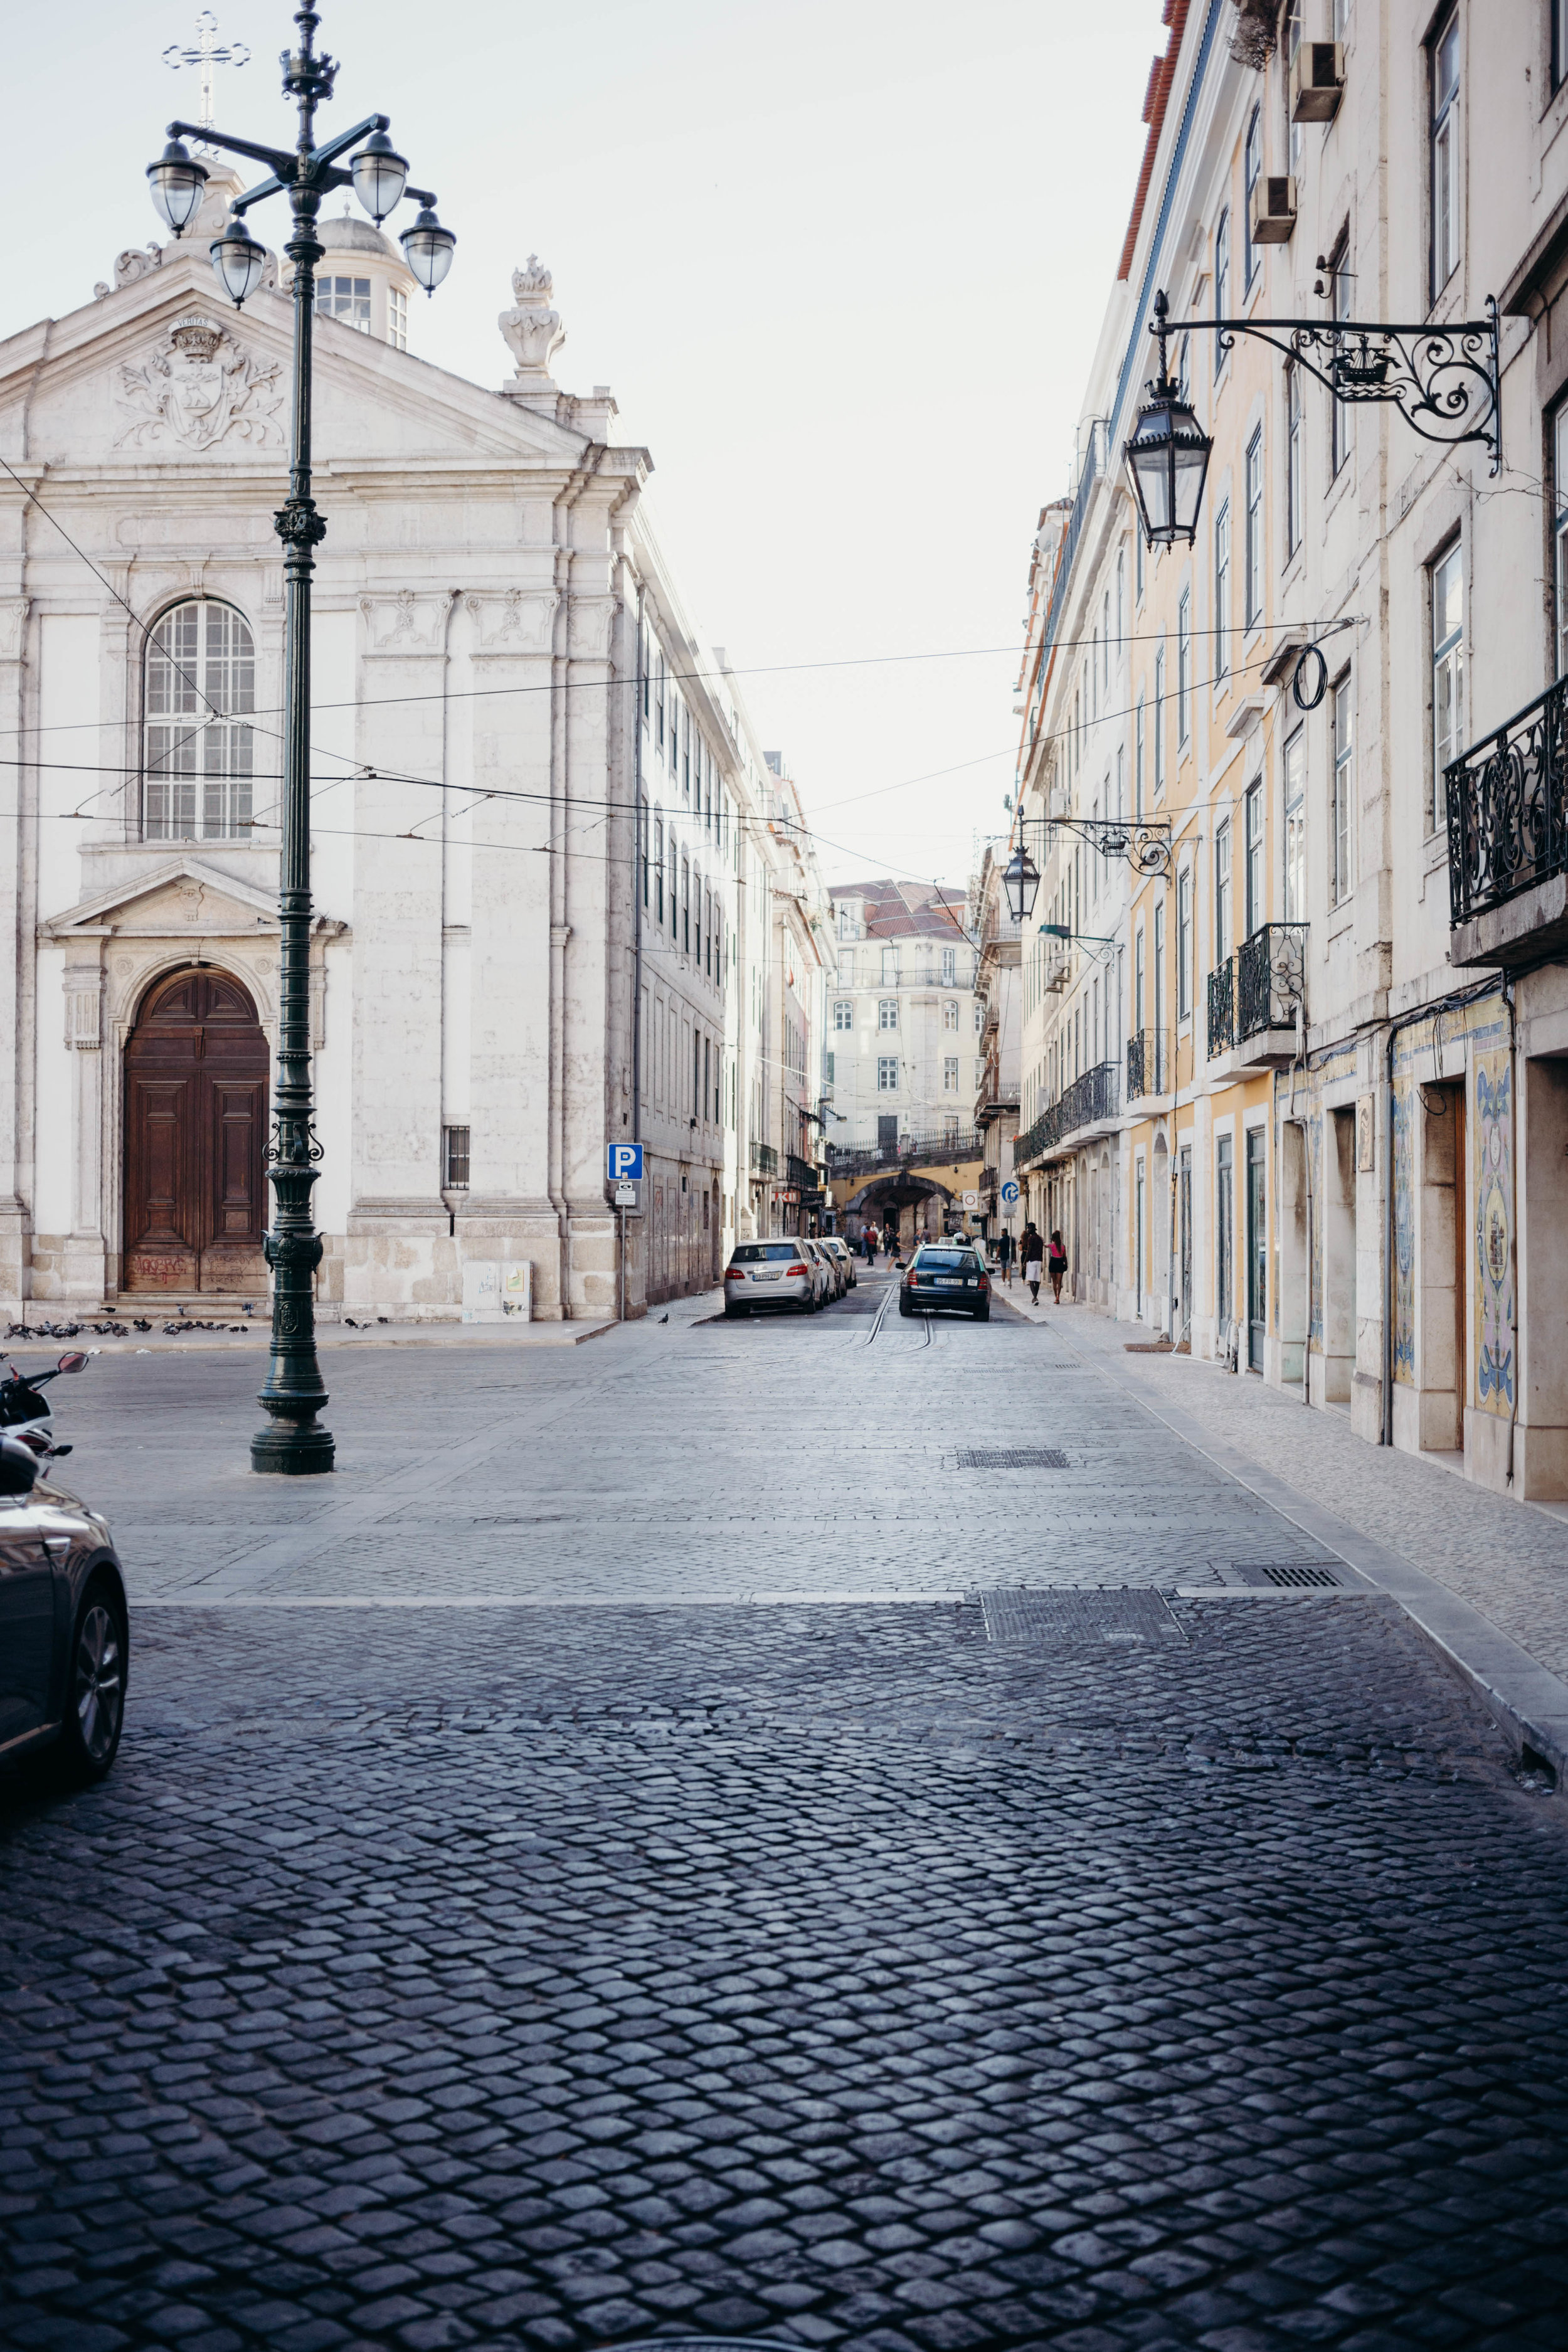 Our Portugal Travel Diary: Lisbon, Porto, and More | On the Street Where We Live (aretherelilactrees.com)